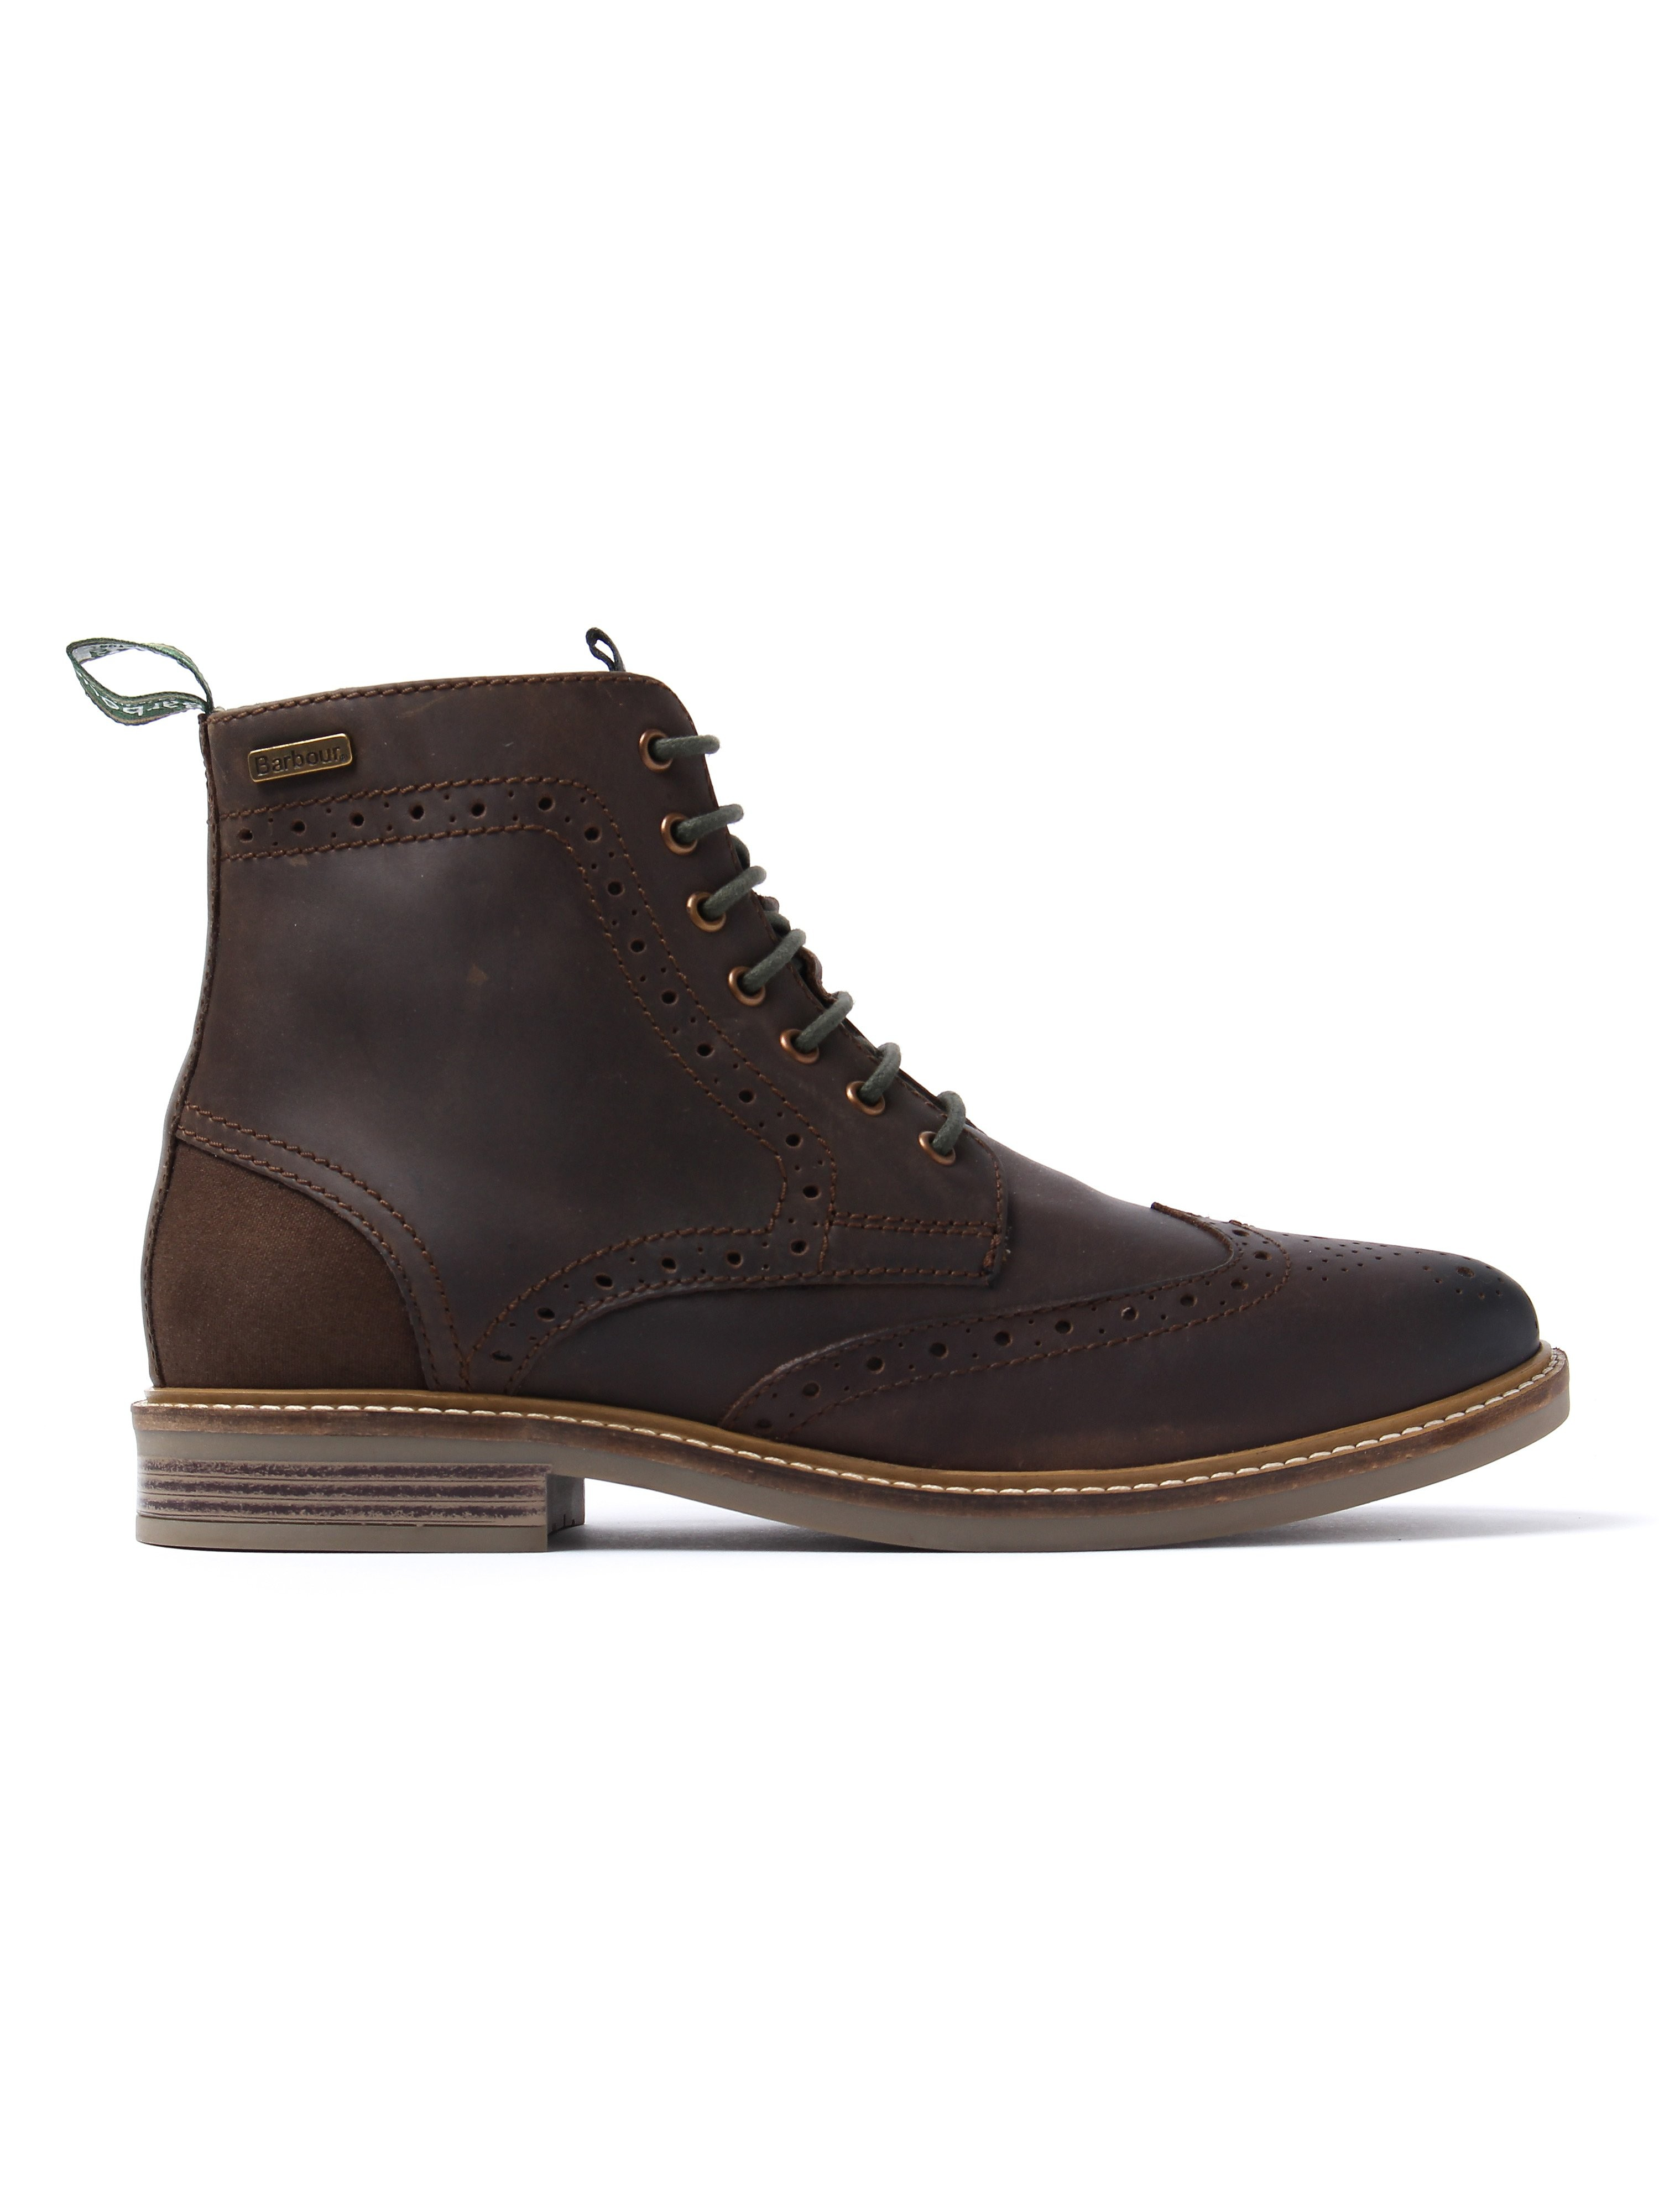 Barbour Men's Belsay Brogue Derby Boots - Choco Wax Leather